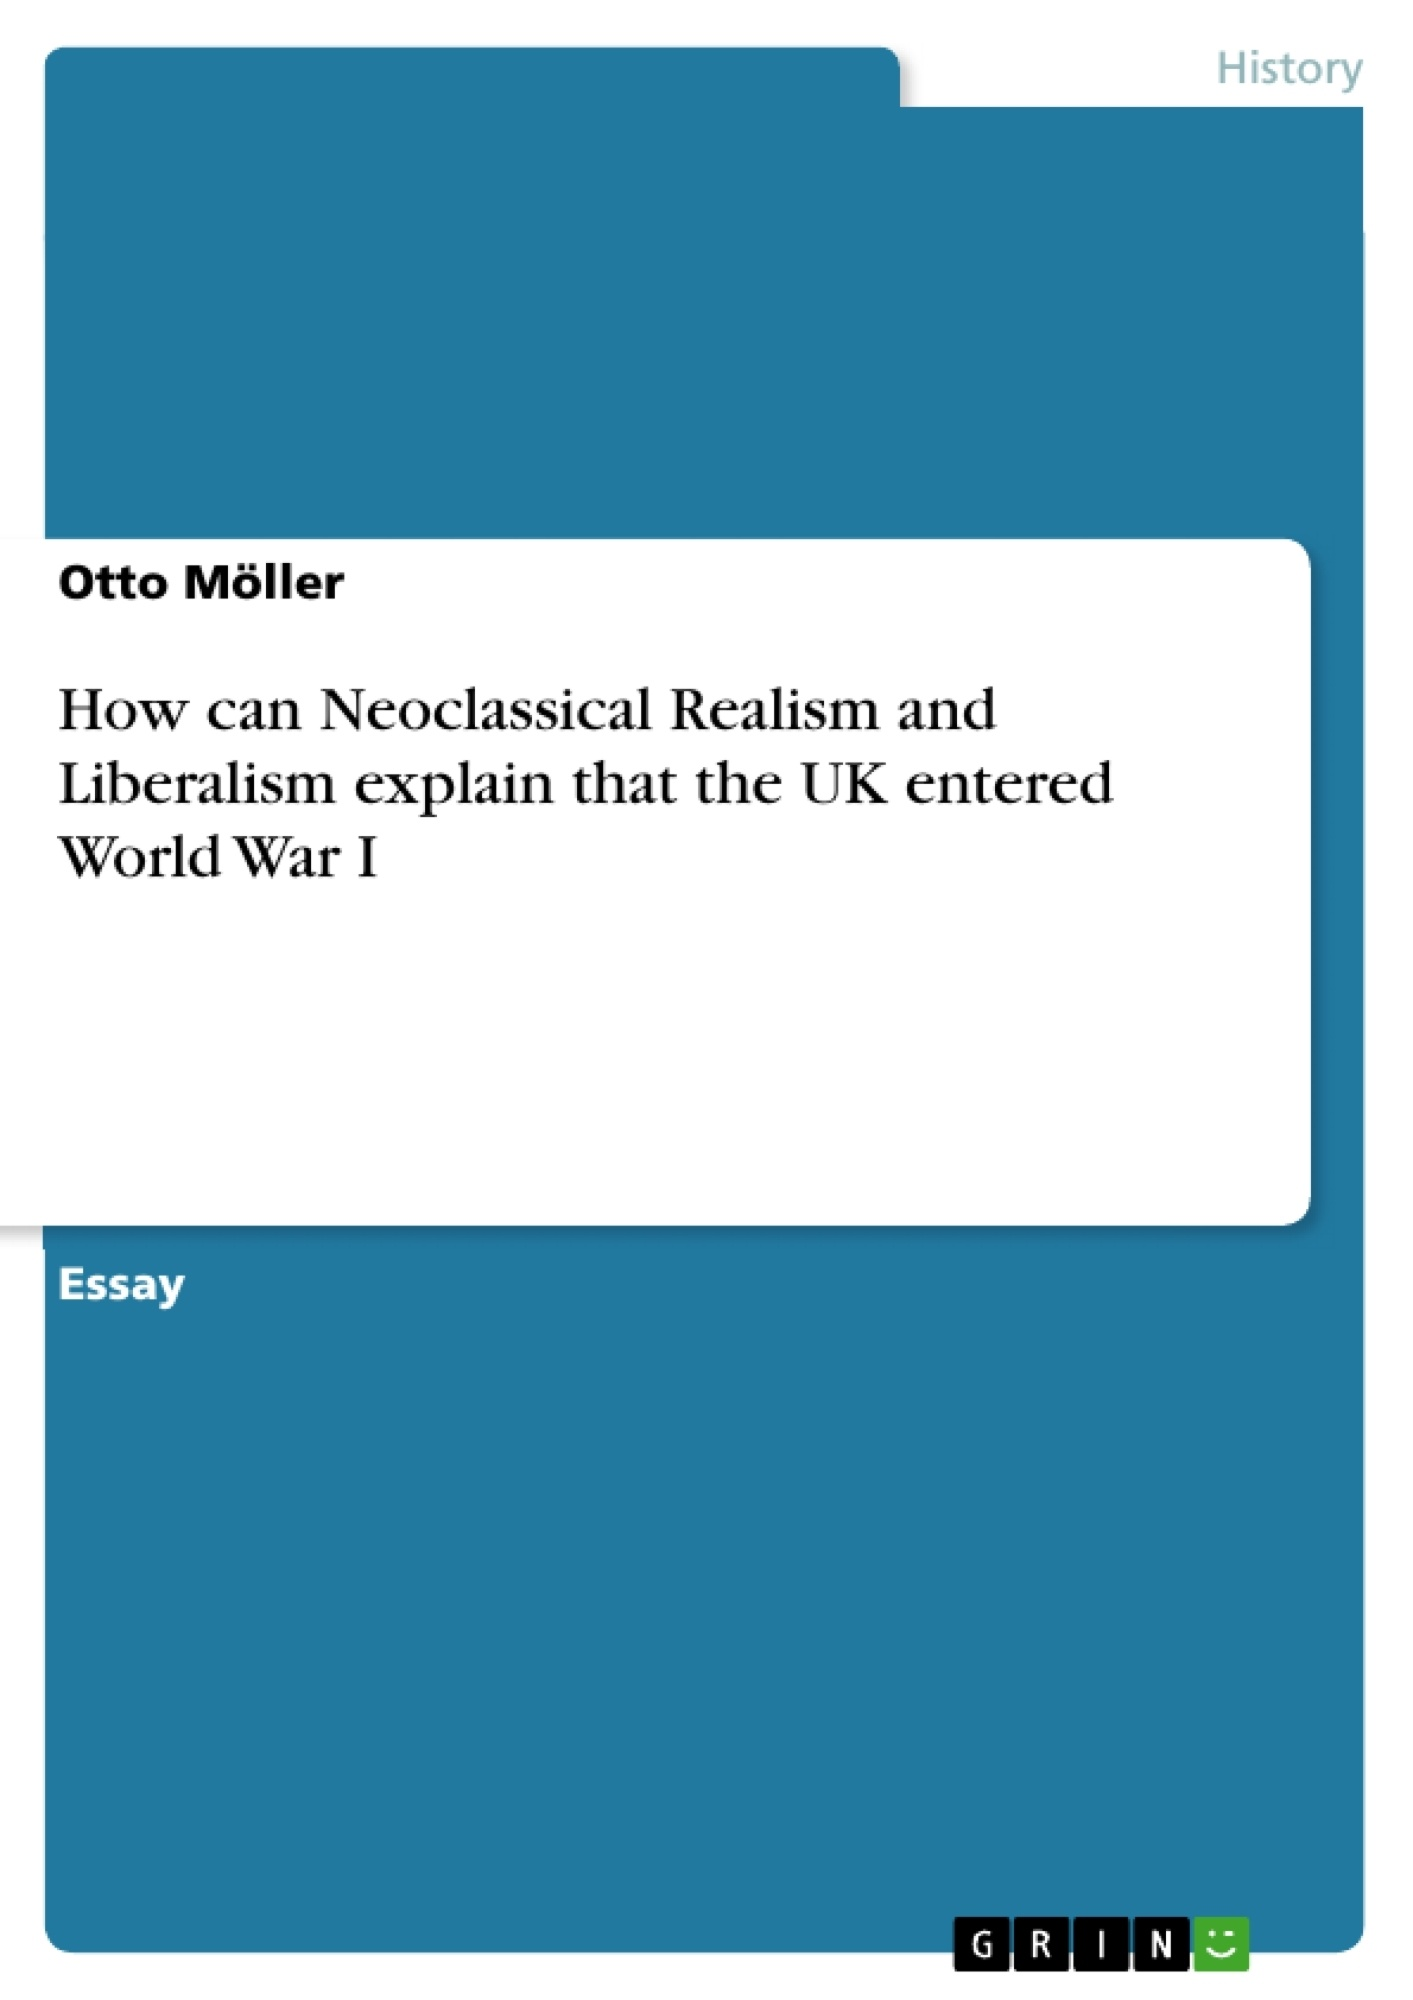 Title: How can Neoclassical Realism and Liberalism explain that the UK entered World War I